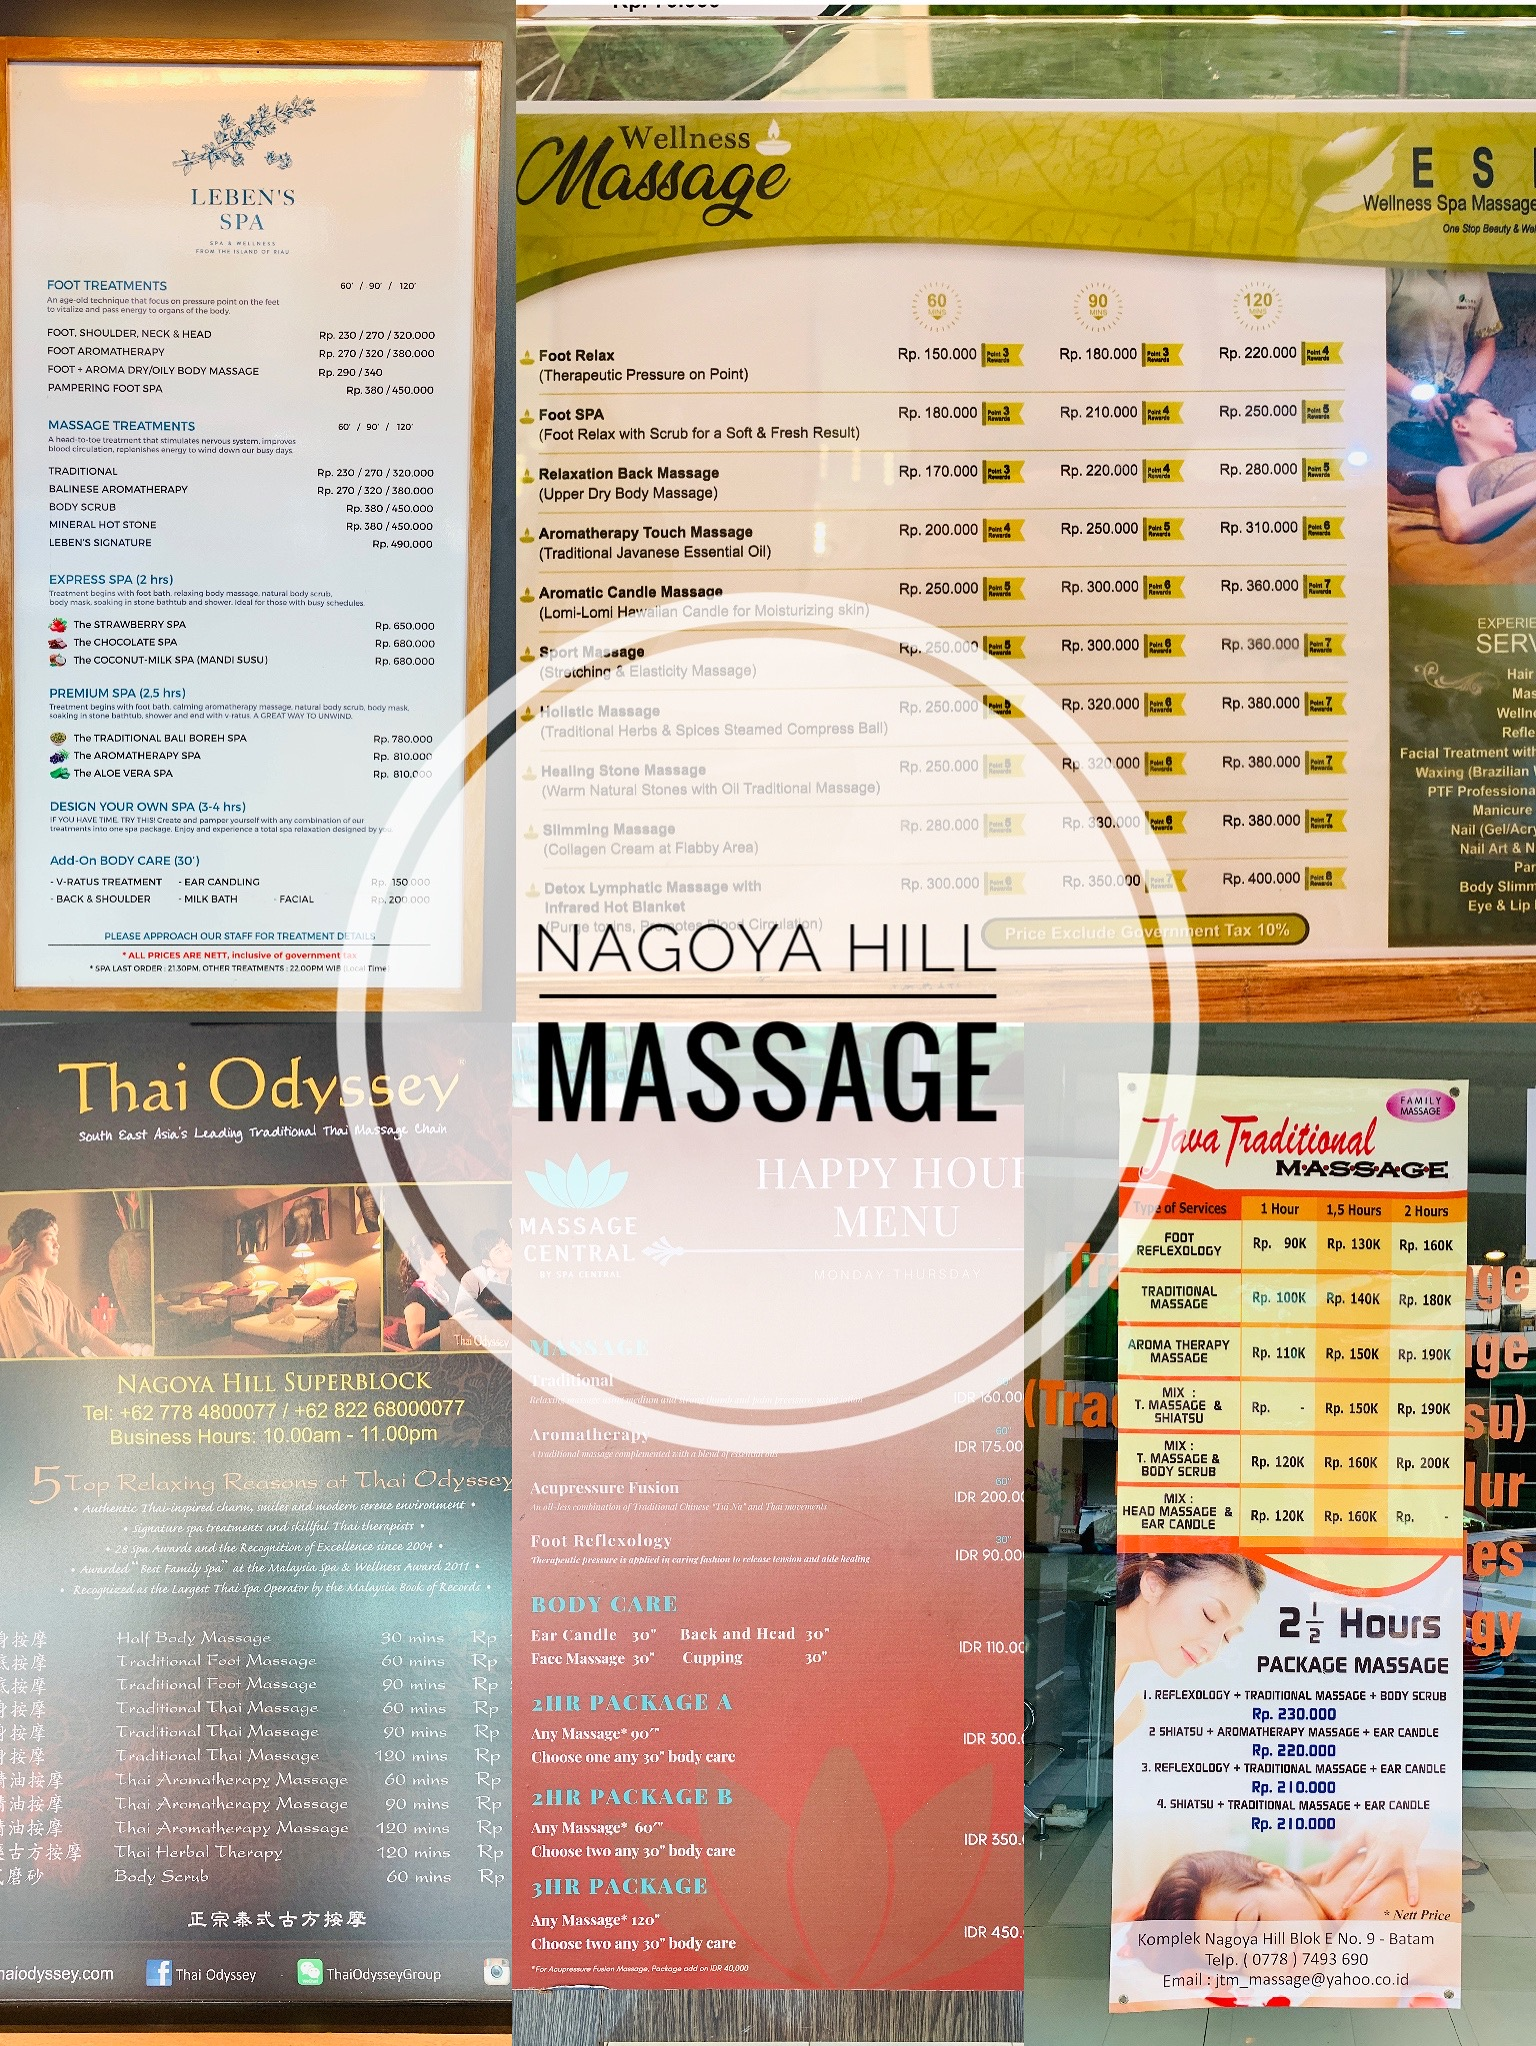 Nagoya Hill Massage Nagoya Hill 按摩 6